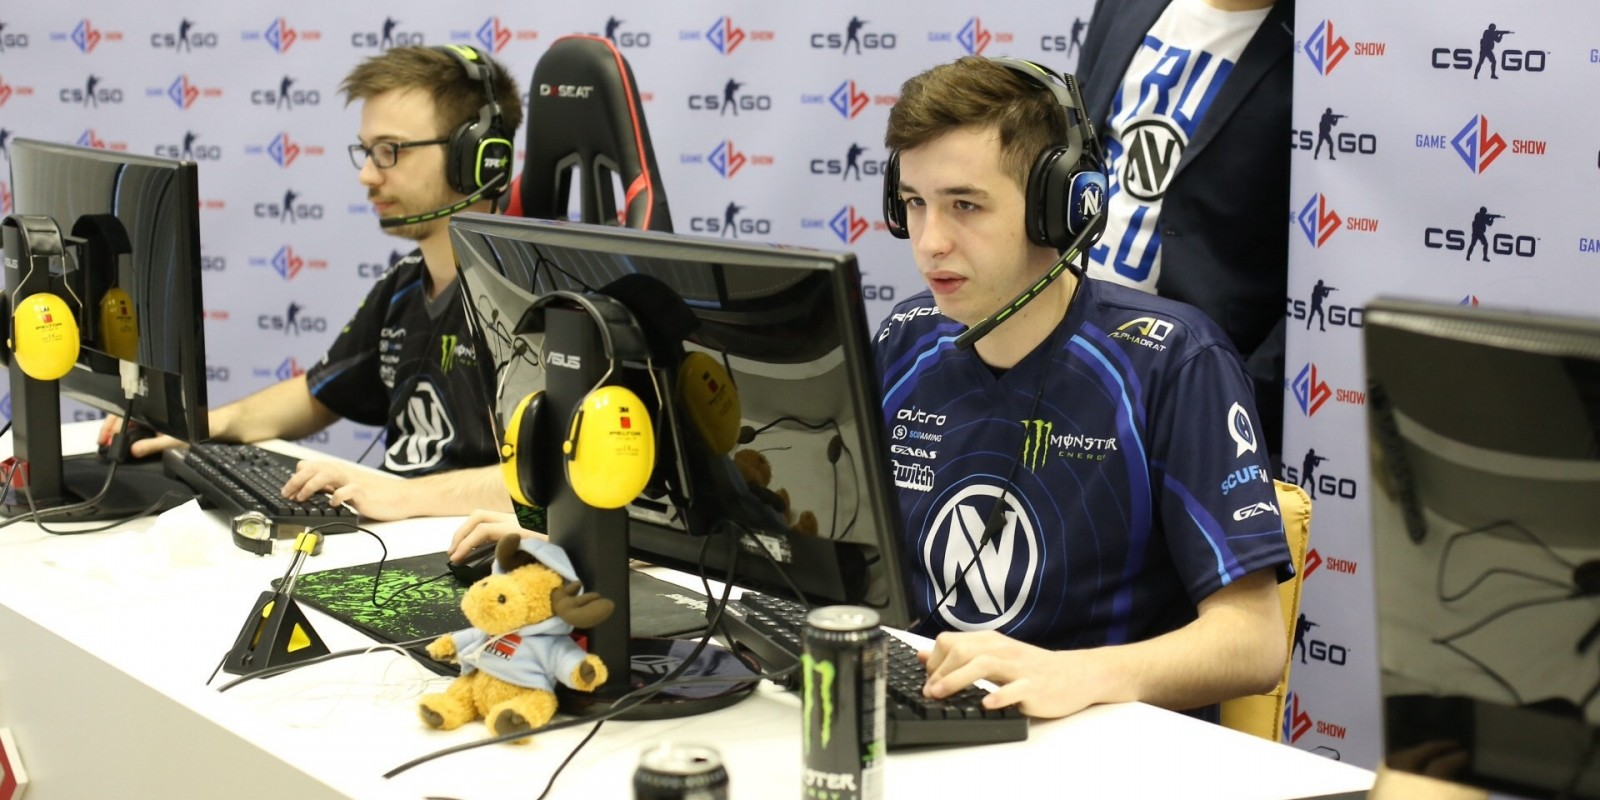 GameShow Global Esports Cup Lan Finals in Vilnius, Lithuania featuring team EnvyUs